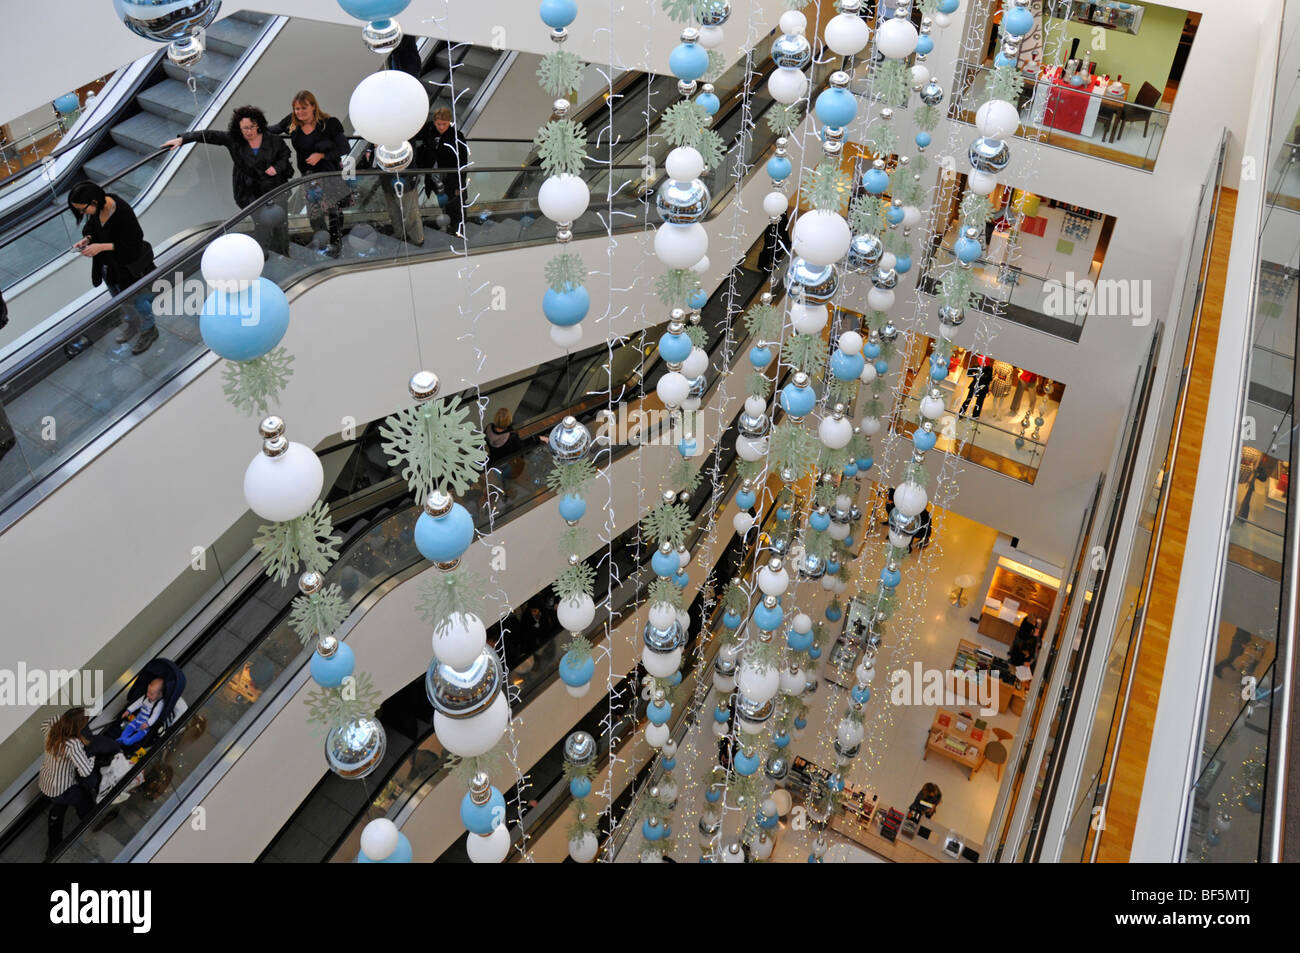 John Lewis Store Interior Christmas Decorations And Escalators London  Oxford Street